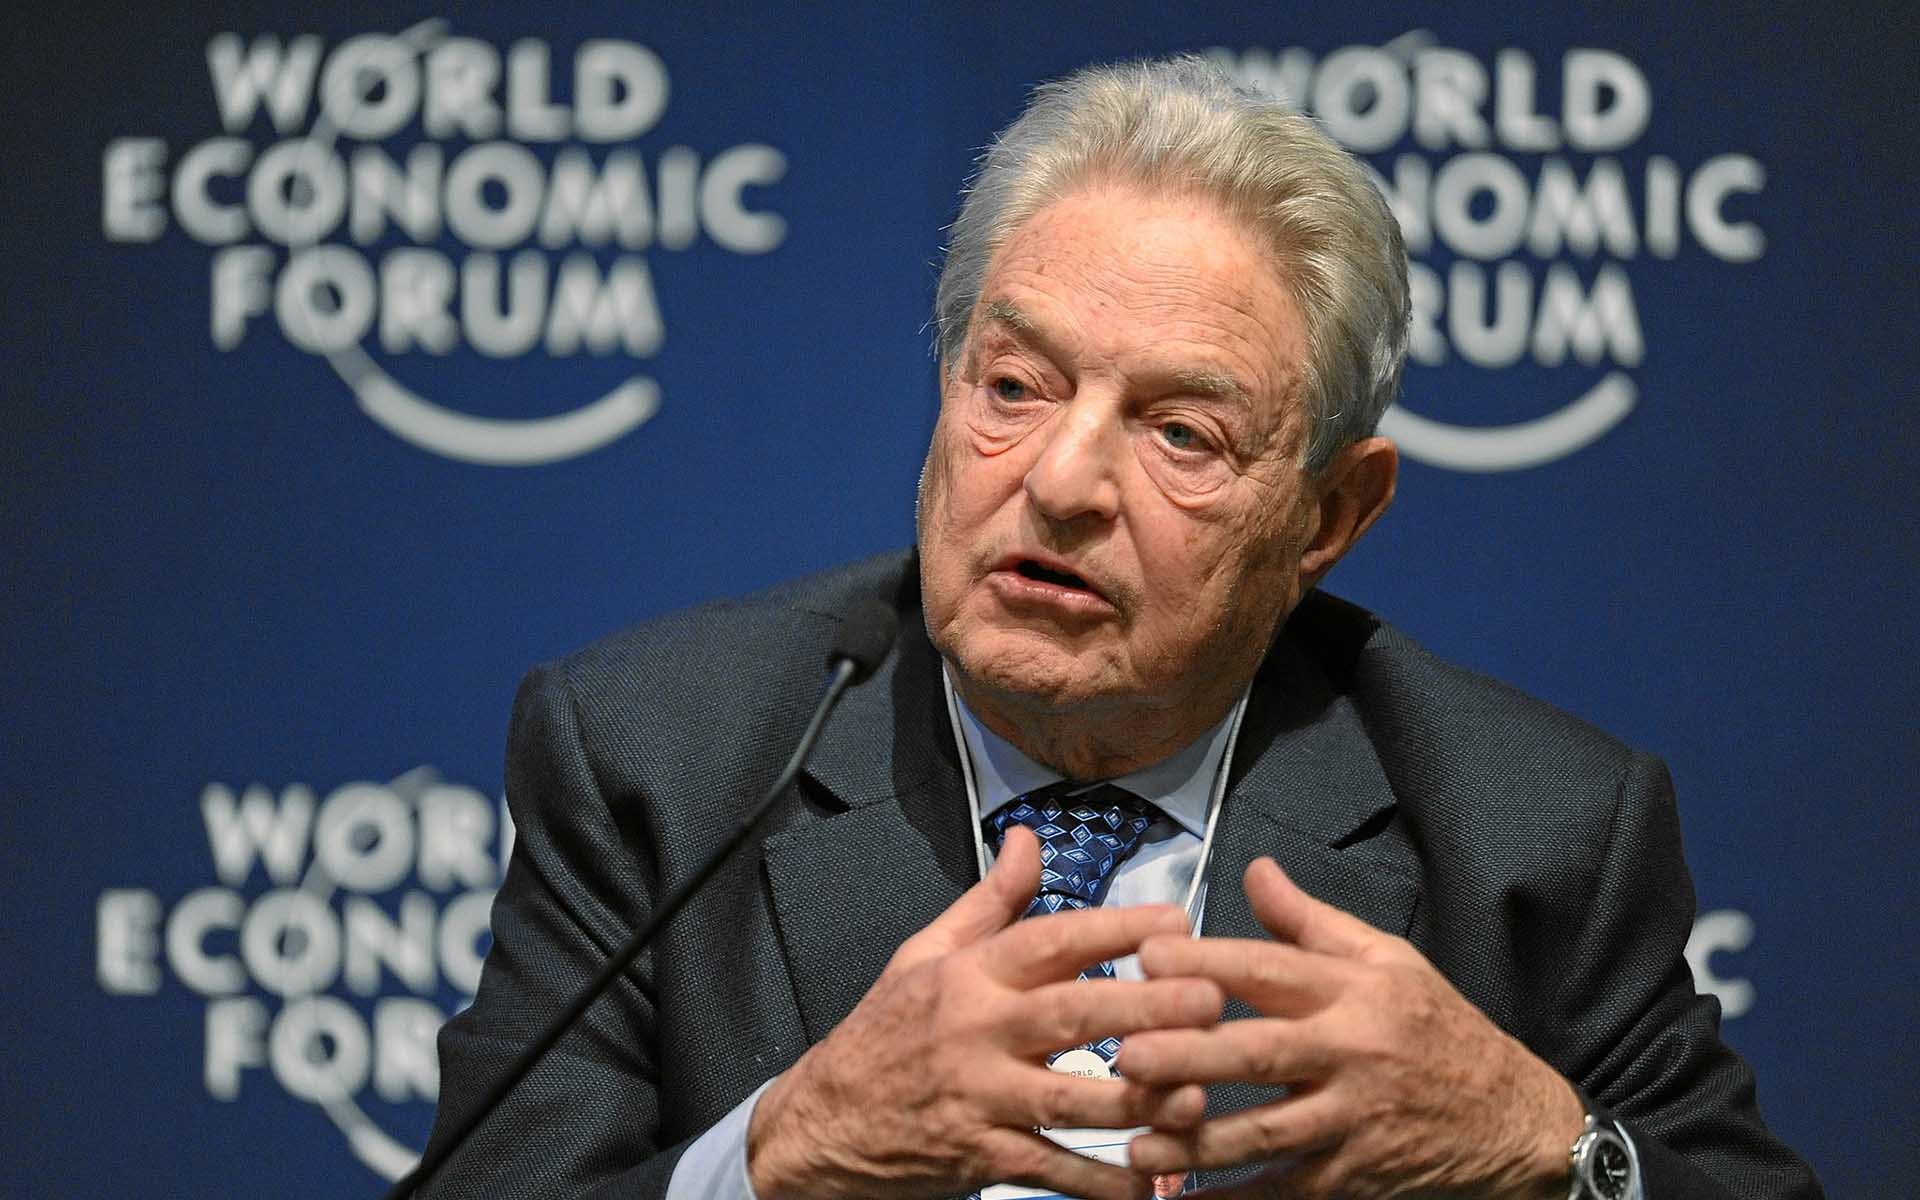 From FUD to Fanboy: George Soros to Begin Trading Cryptocurrencies